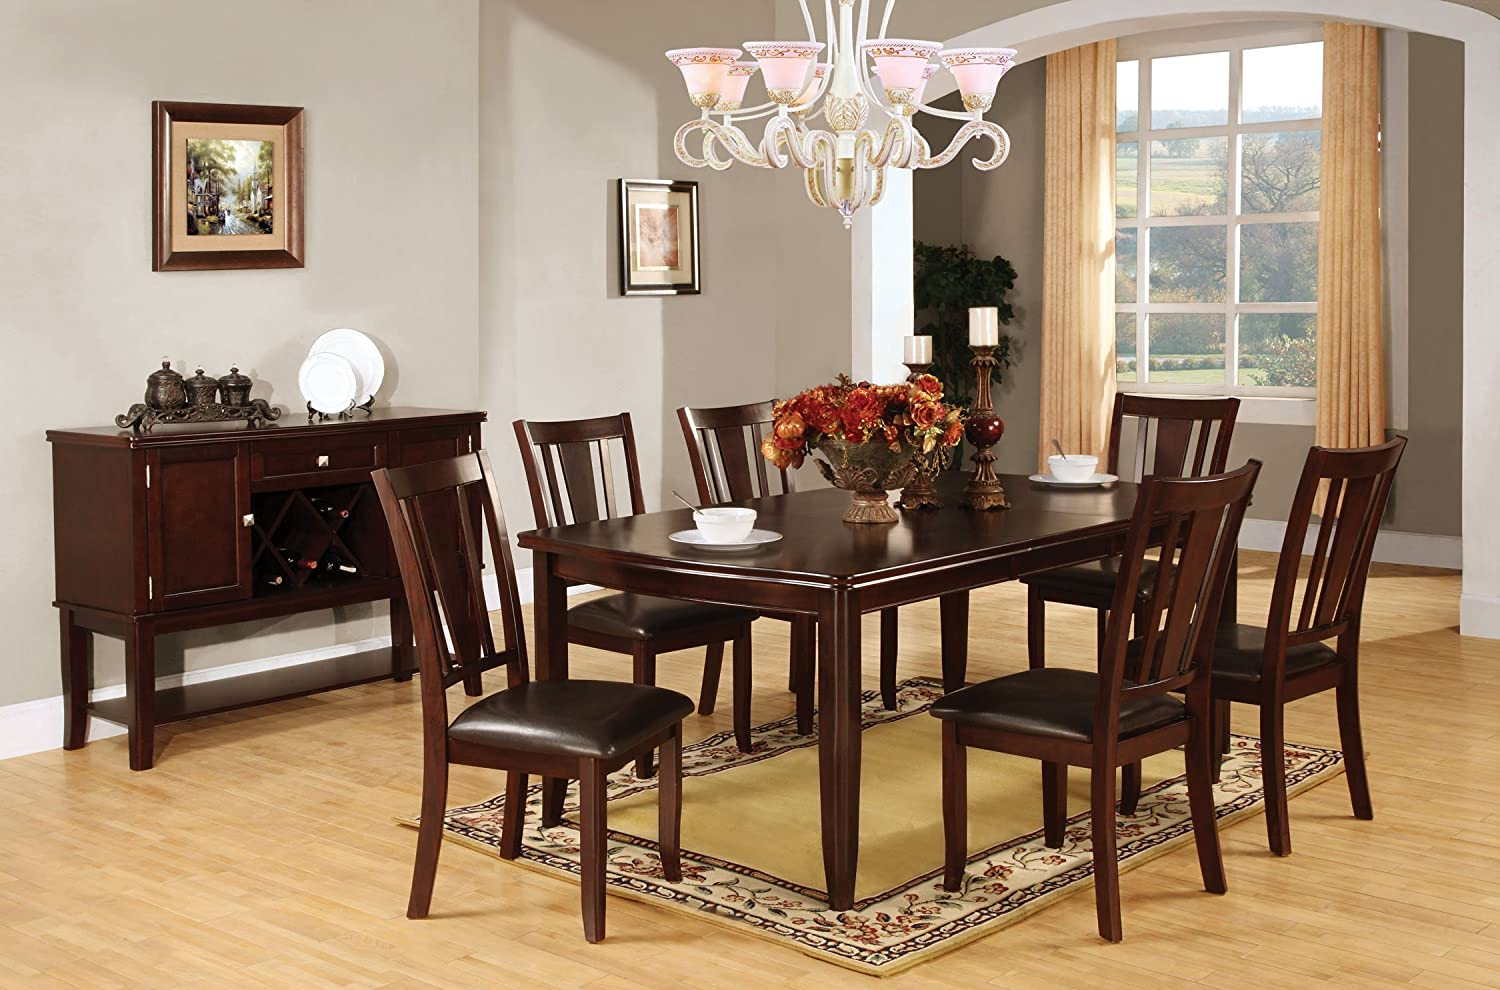 Amazon.com - Furniture of America Anlow 7-Piece Dining Table Set ...